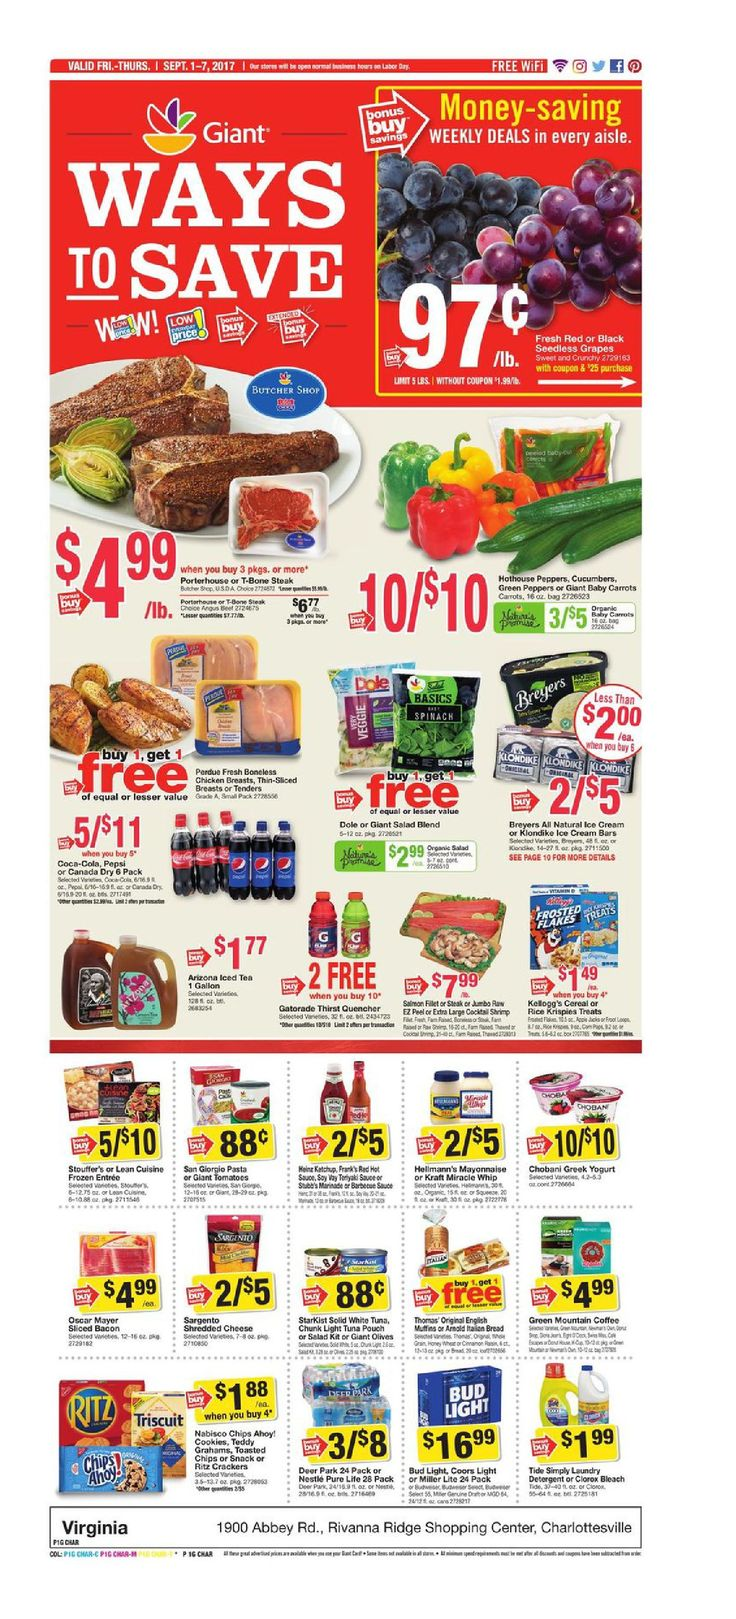 Giant Food Weekly Ad September 1 - 7, 2017 - http://www.olcatalog.com/grocery/giant-food-weekly-ad.html